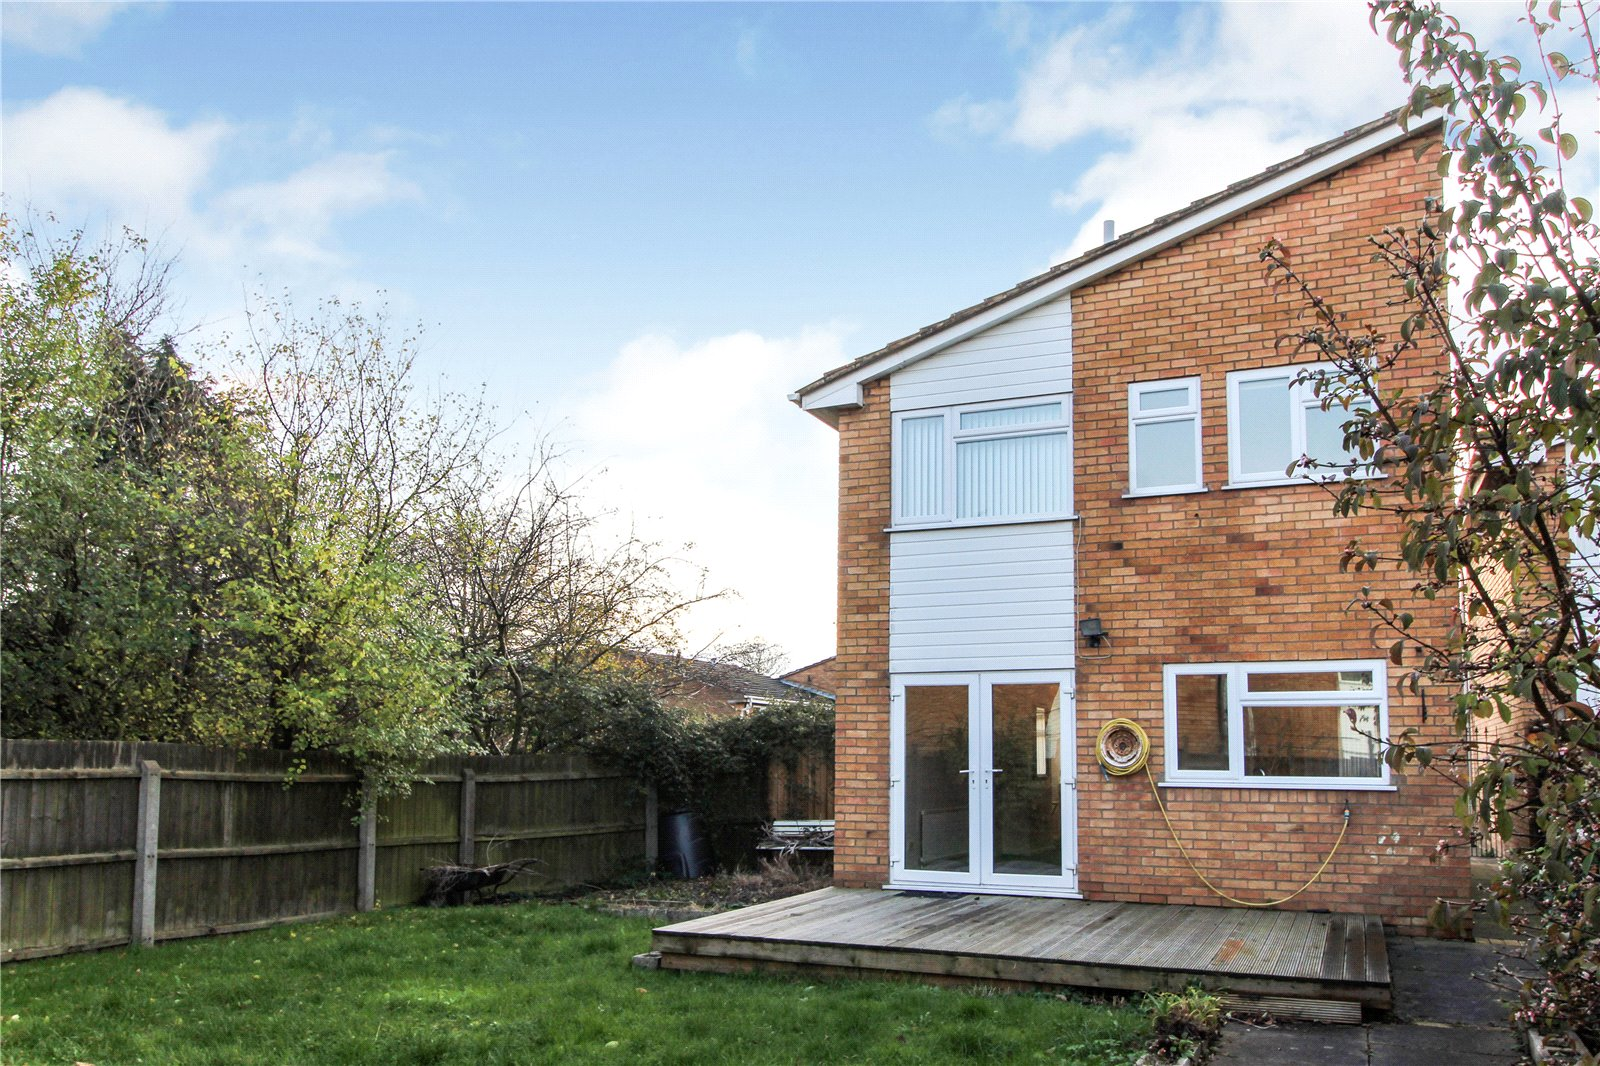 Badgers Close, Leicester, Leicestershire LE4